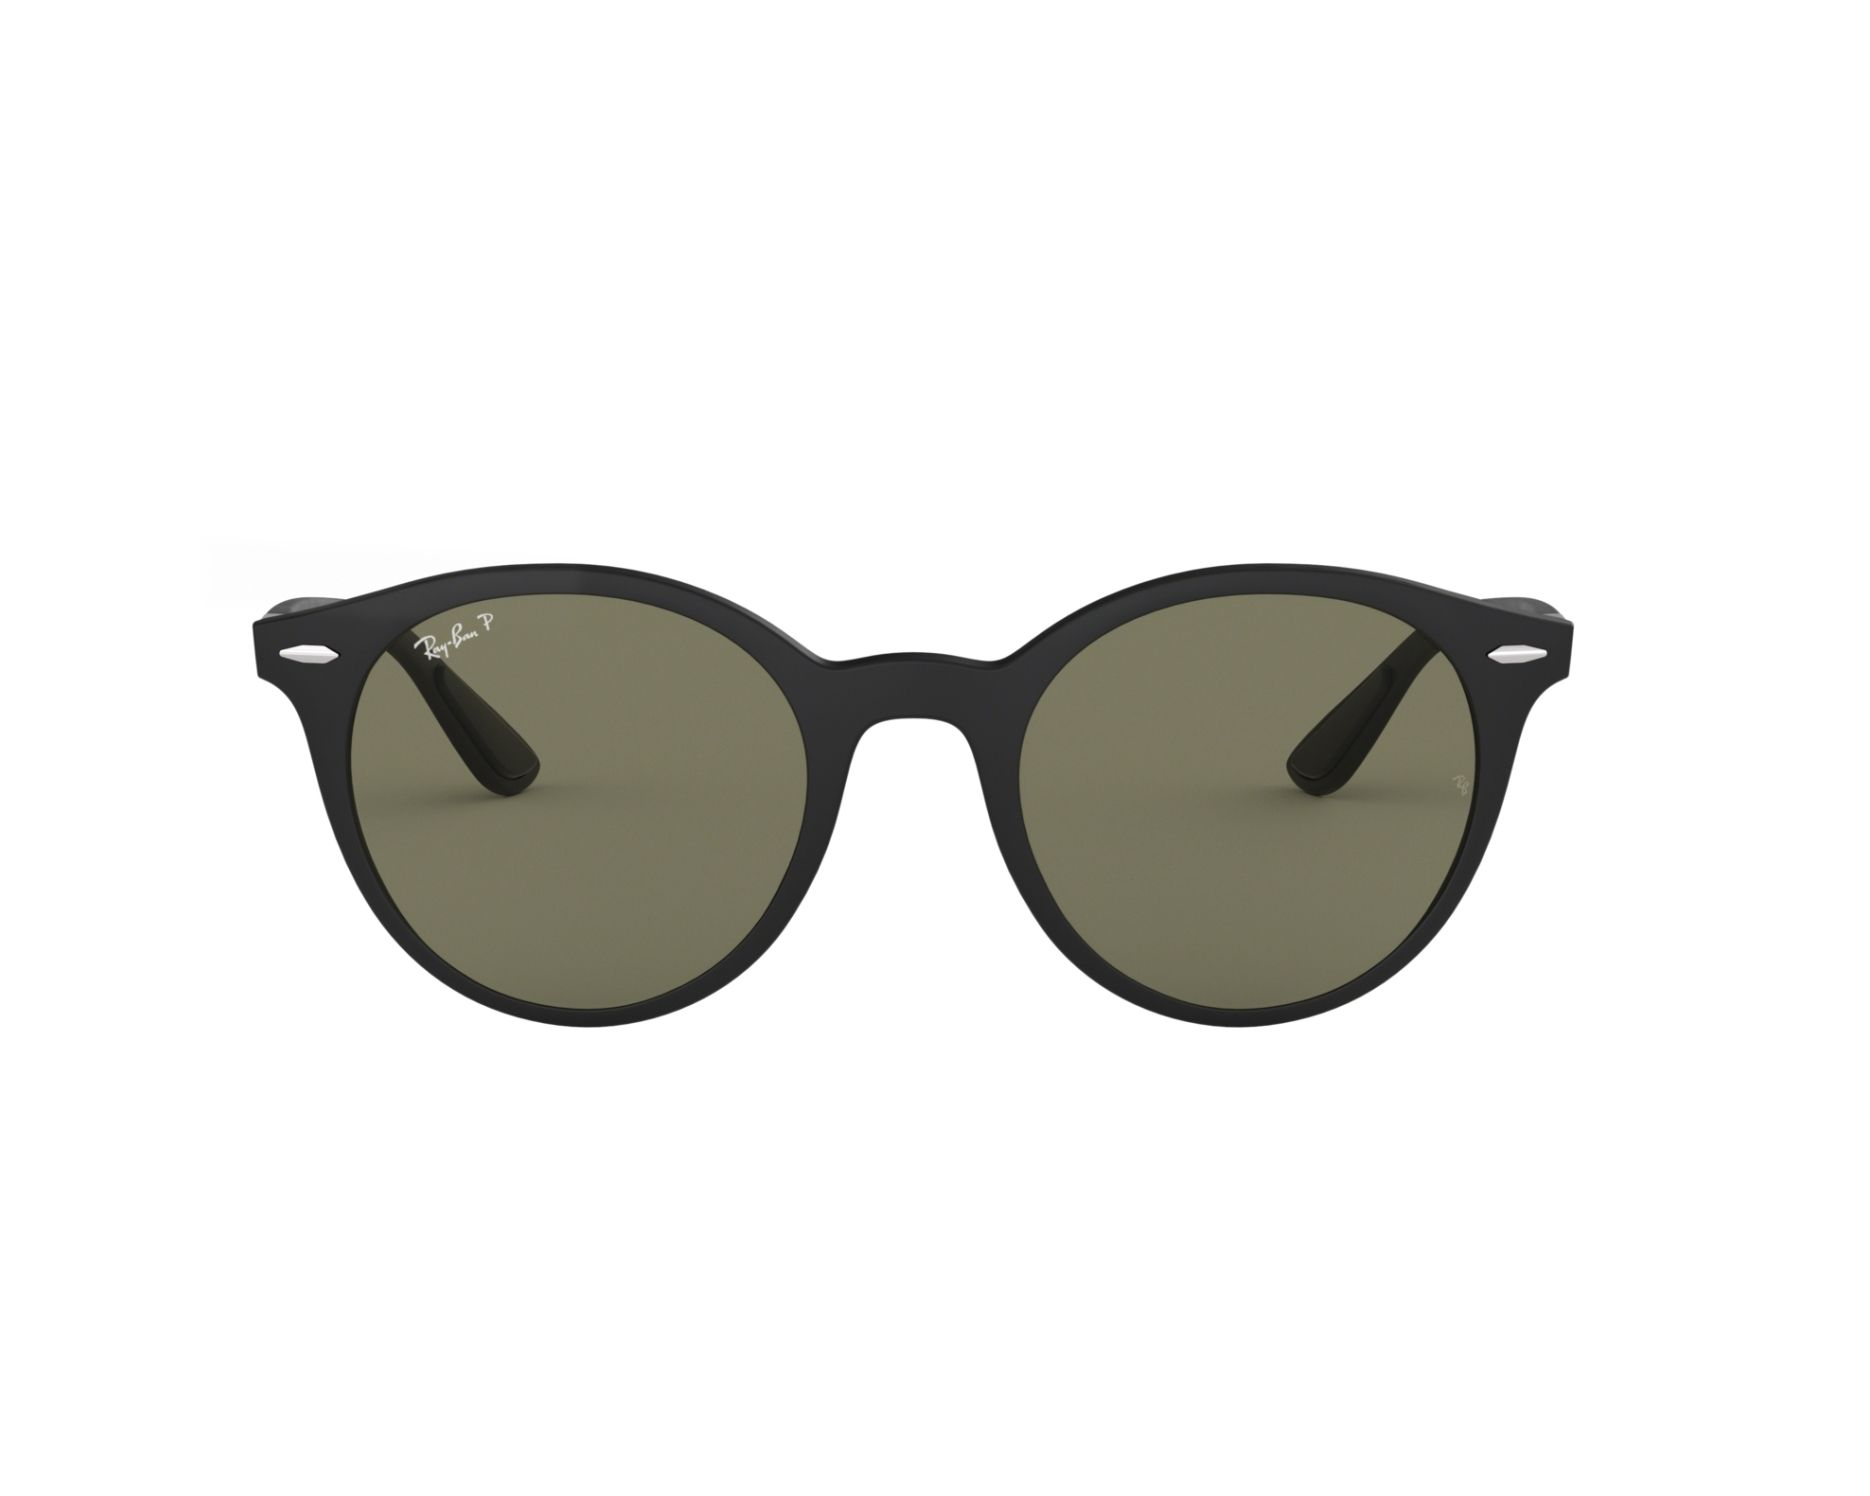 6f832b2353ca2 thumbnail Sunglasses Ray-Ban RB-4296 601S9A 51-21 Black 360 degree view